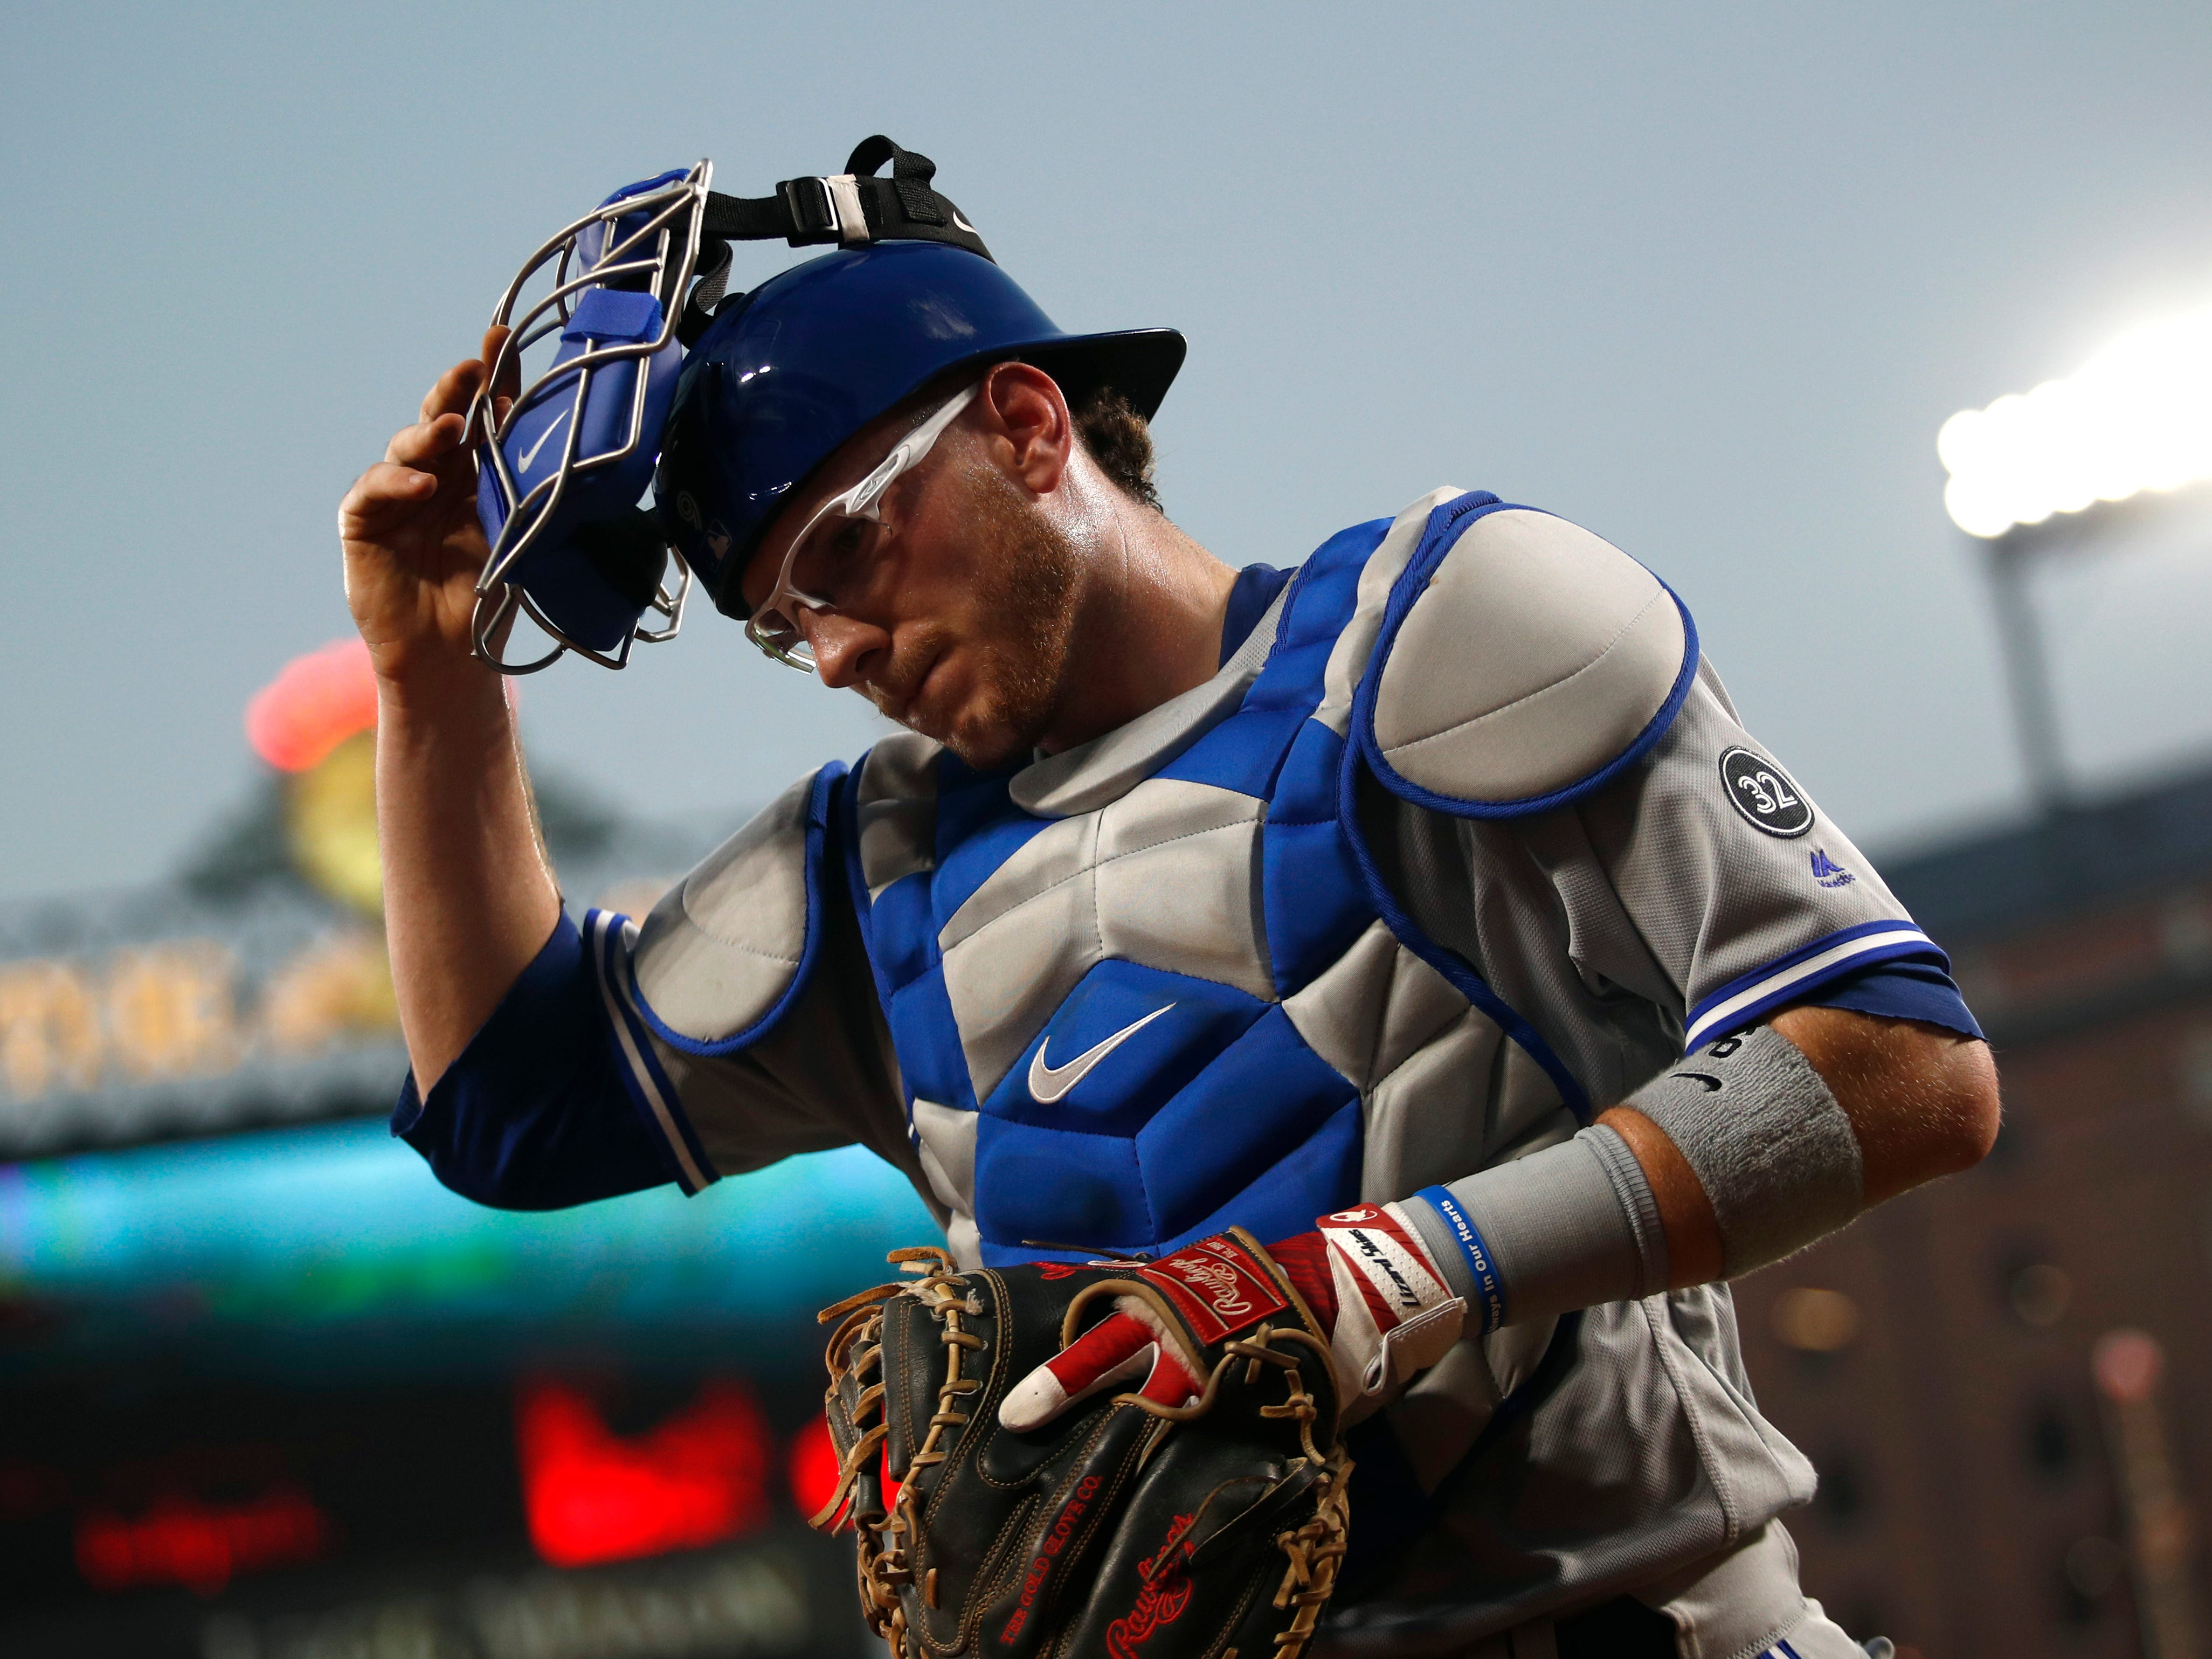 Toronto Blue Jays catcher Danny Jansen walks off the field between innings of a baseball game against the Baltimore Orioles, Tuesday, Aug. 28, 2018, in Baltimore. (AP Photo/Patrick Semansky)